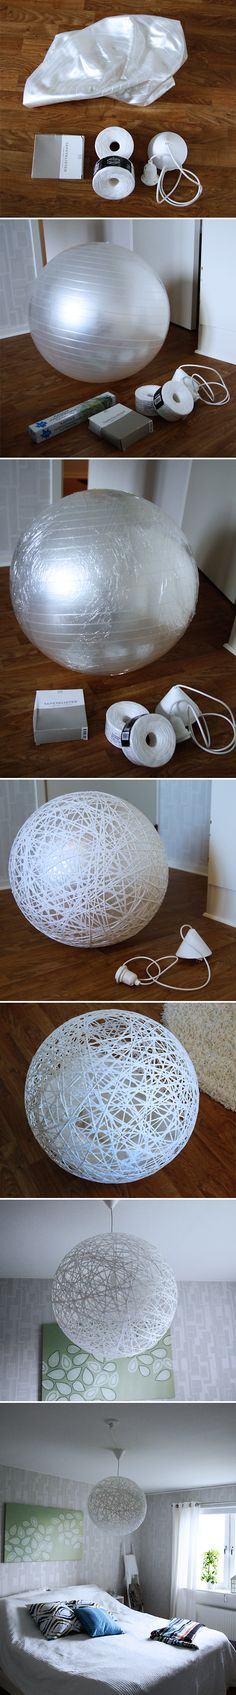 Lamp idea..pretty cool